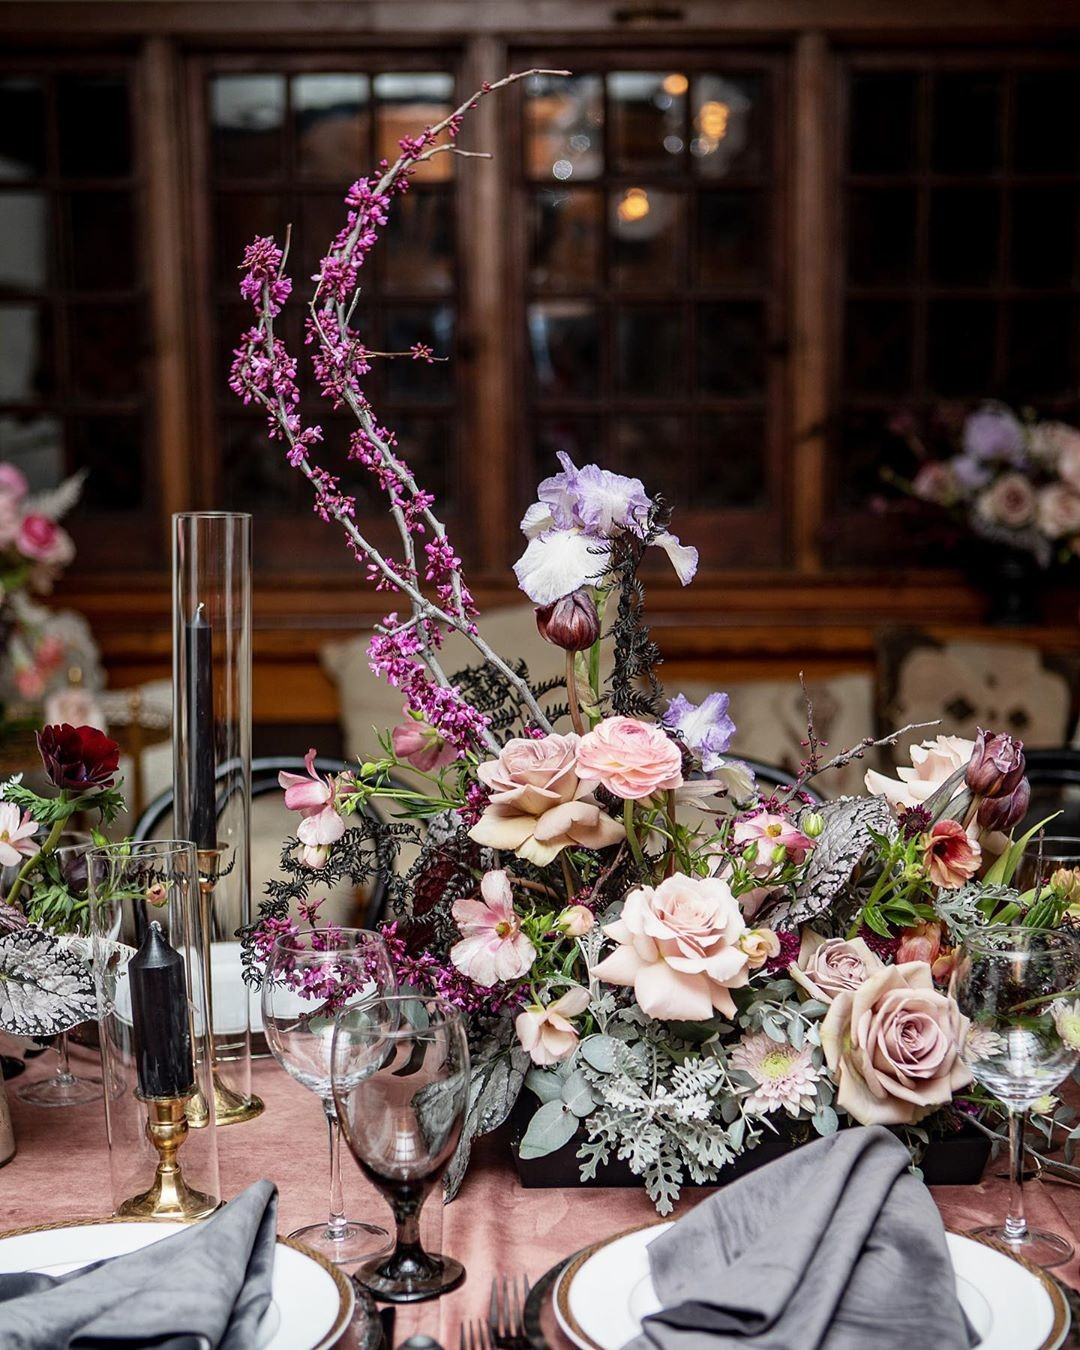 This year, Min's candlelit dinner celebrating her big 3-ohh had one of the dreamiest moon inspired floral centerpieces by